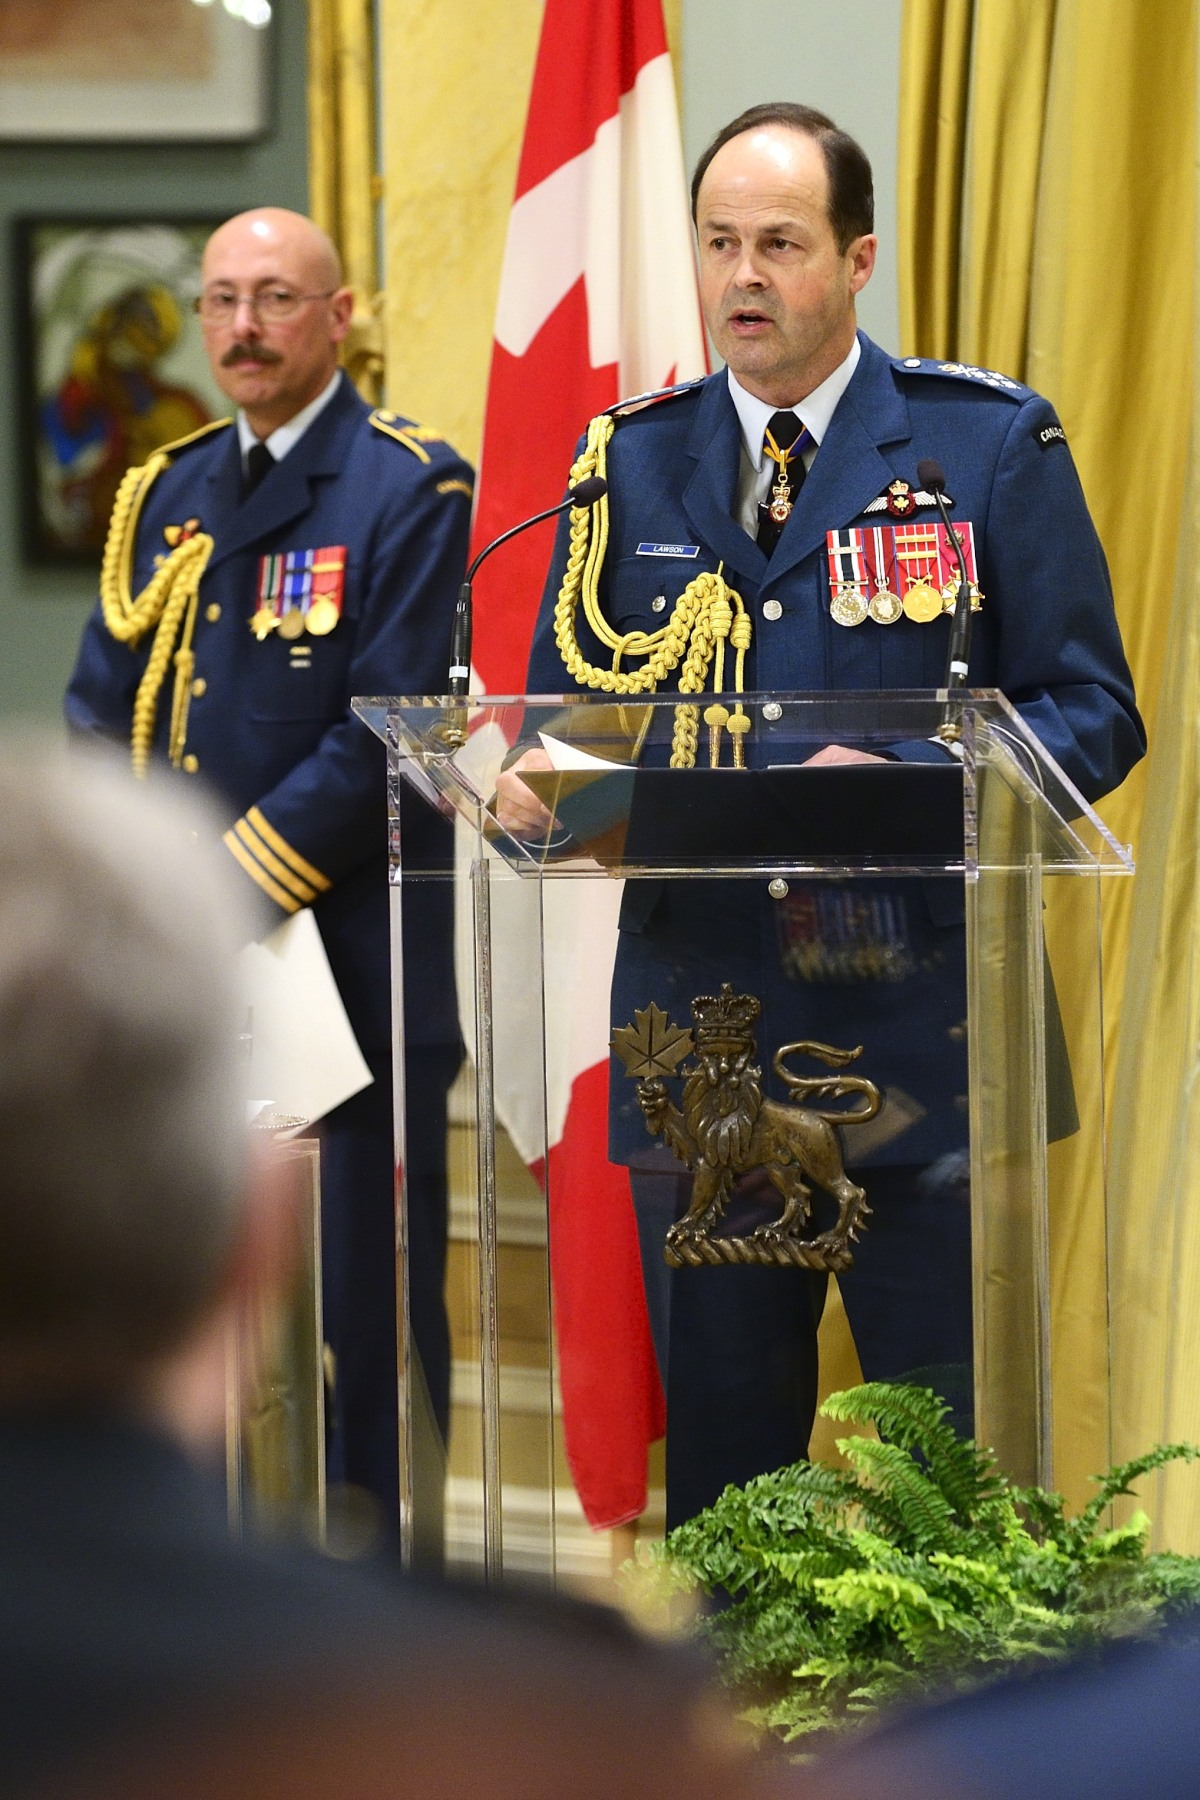 Chief of the Defence Staff General Tom Lawson thanked and congratulated members that were honoured during the ceremony.